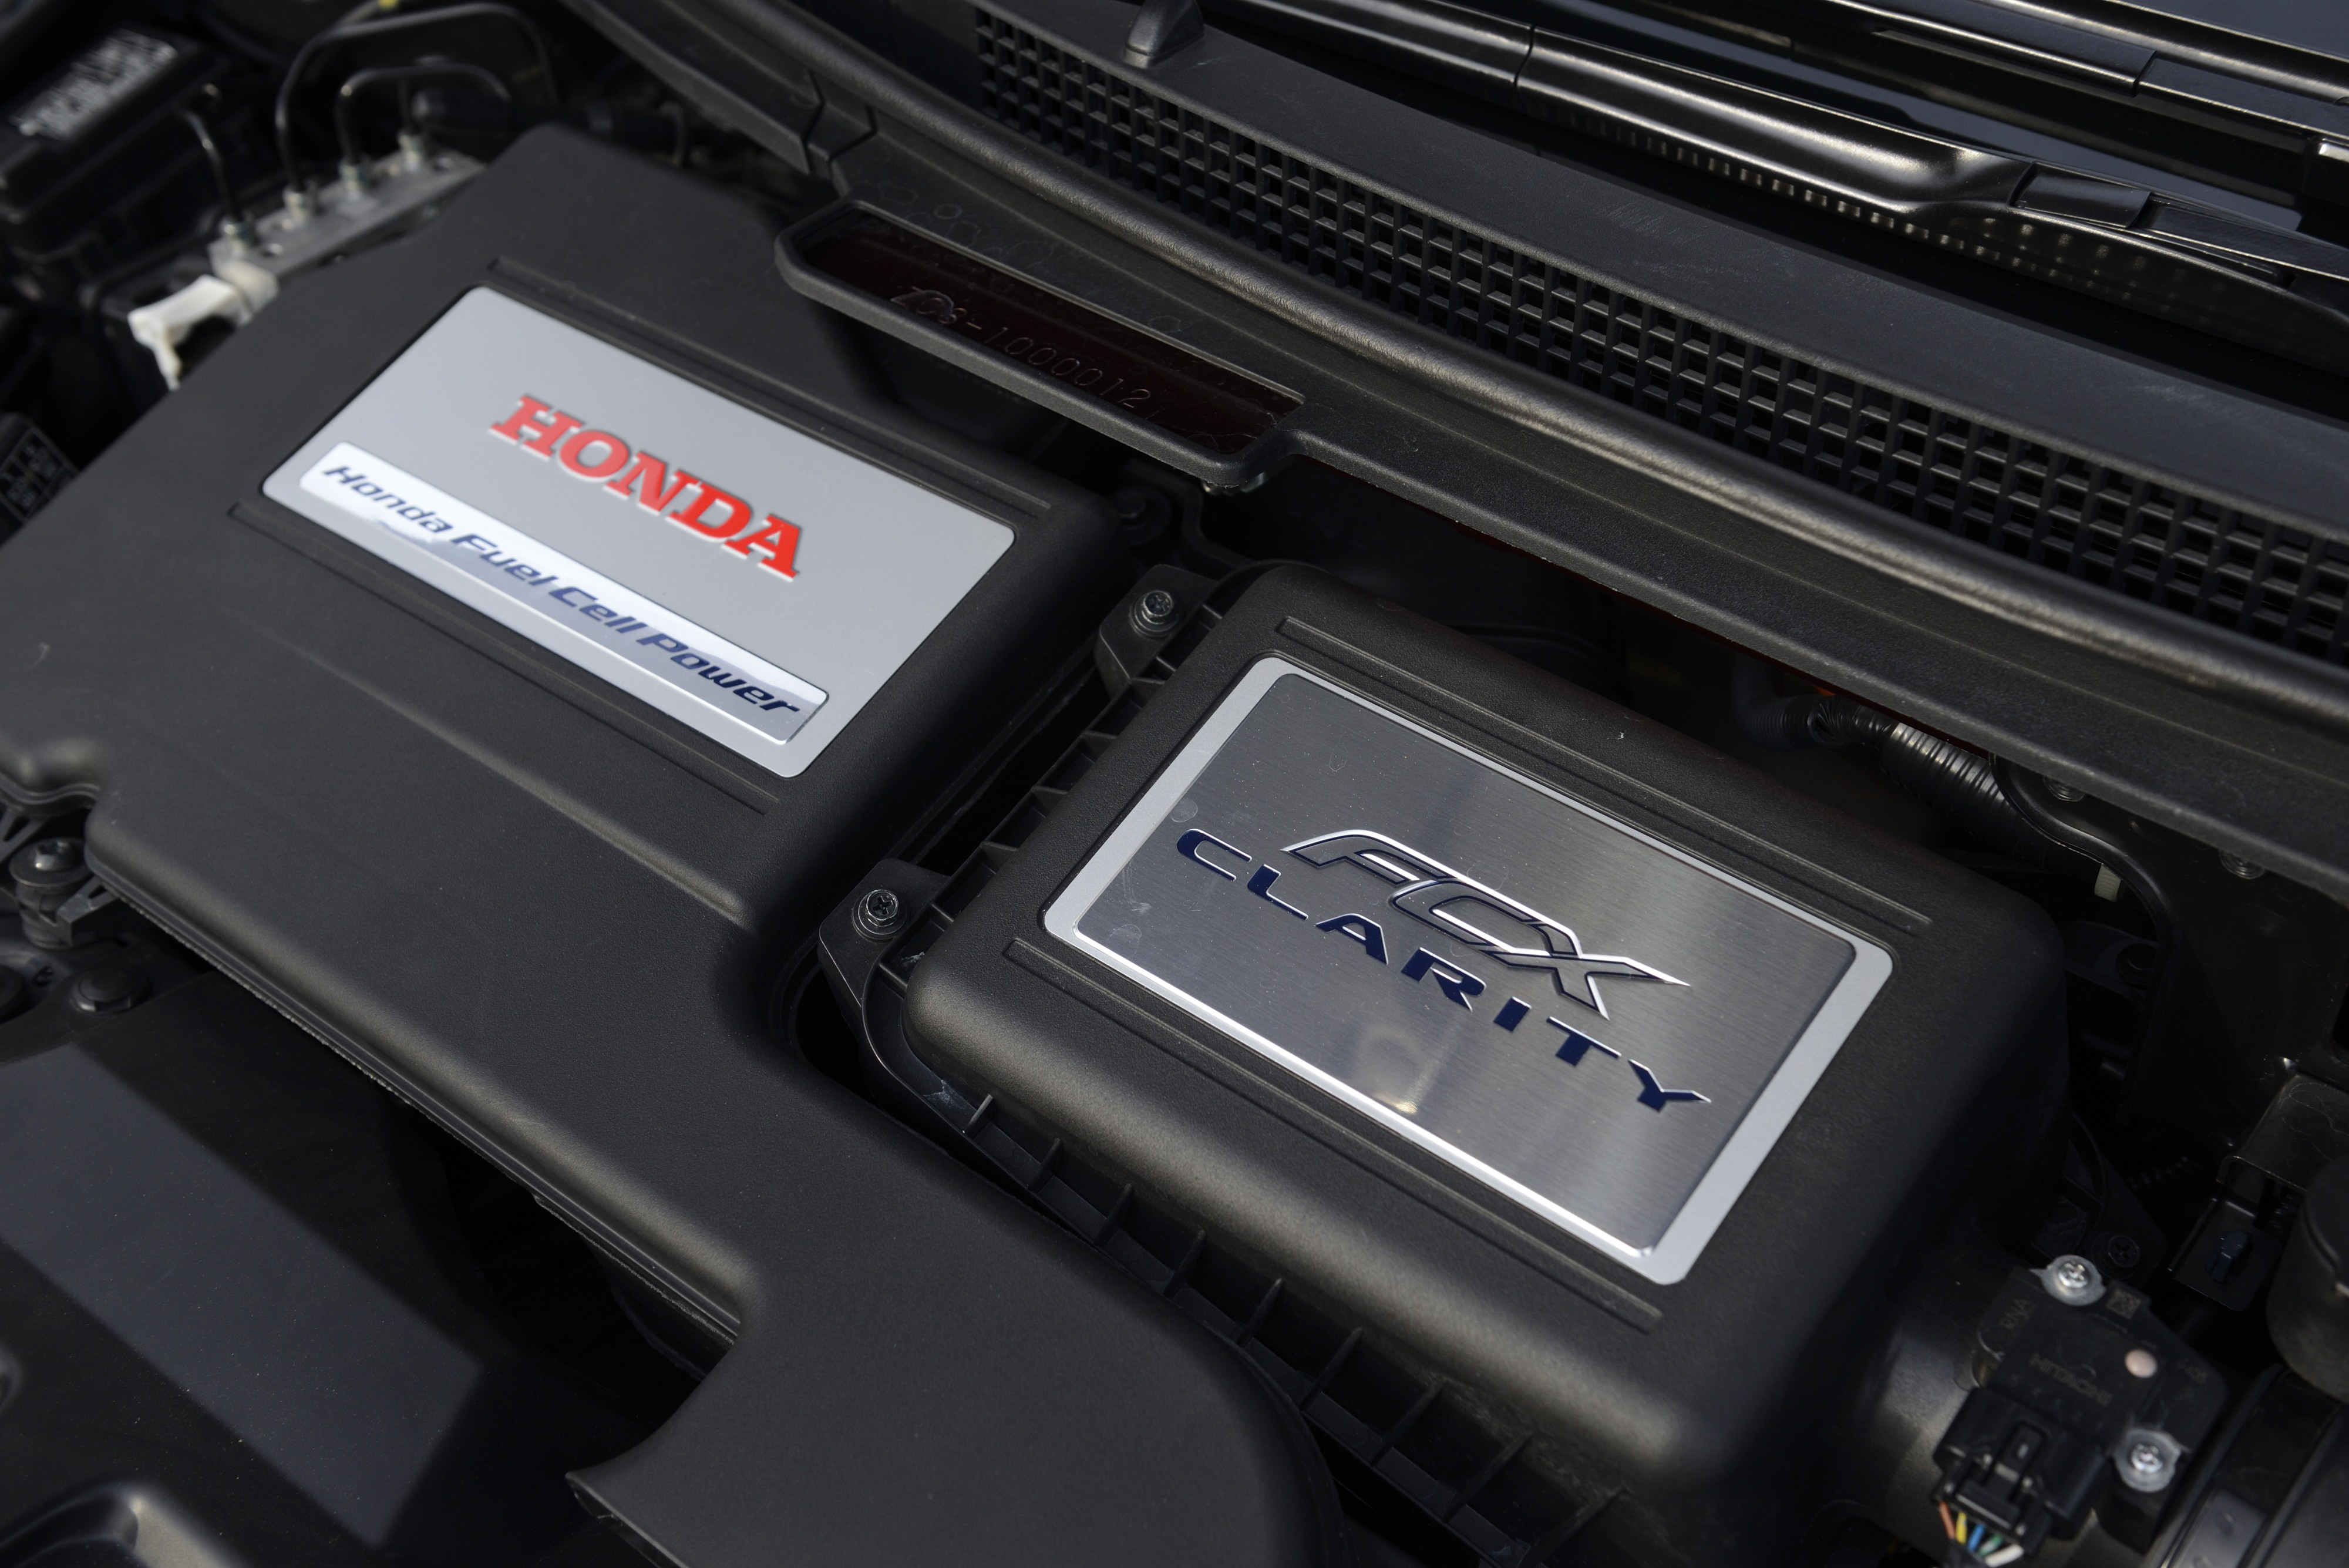 The Honda Motor logo is displayed on a FCX Clarity fuel cell vehicle (FCV) during the unveiling of the company's smart hydrogen fueling station in Japan on Thursday, Sept. 18, 2014.